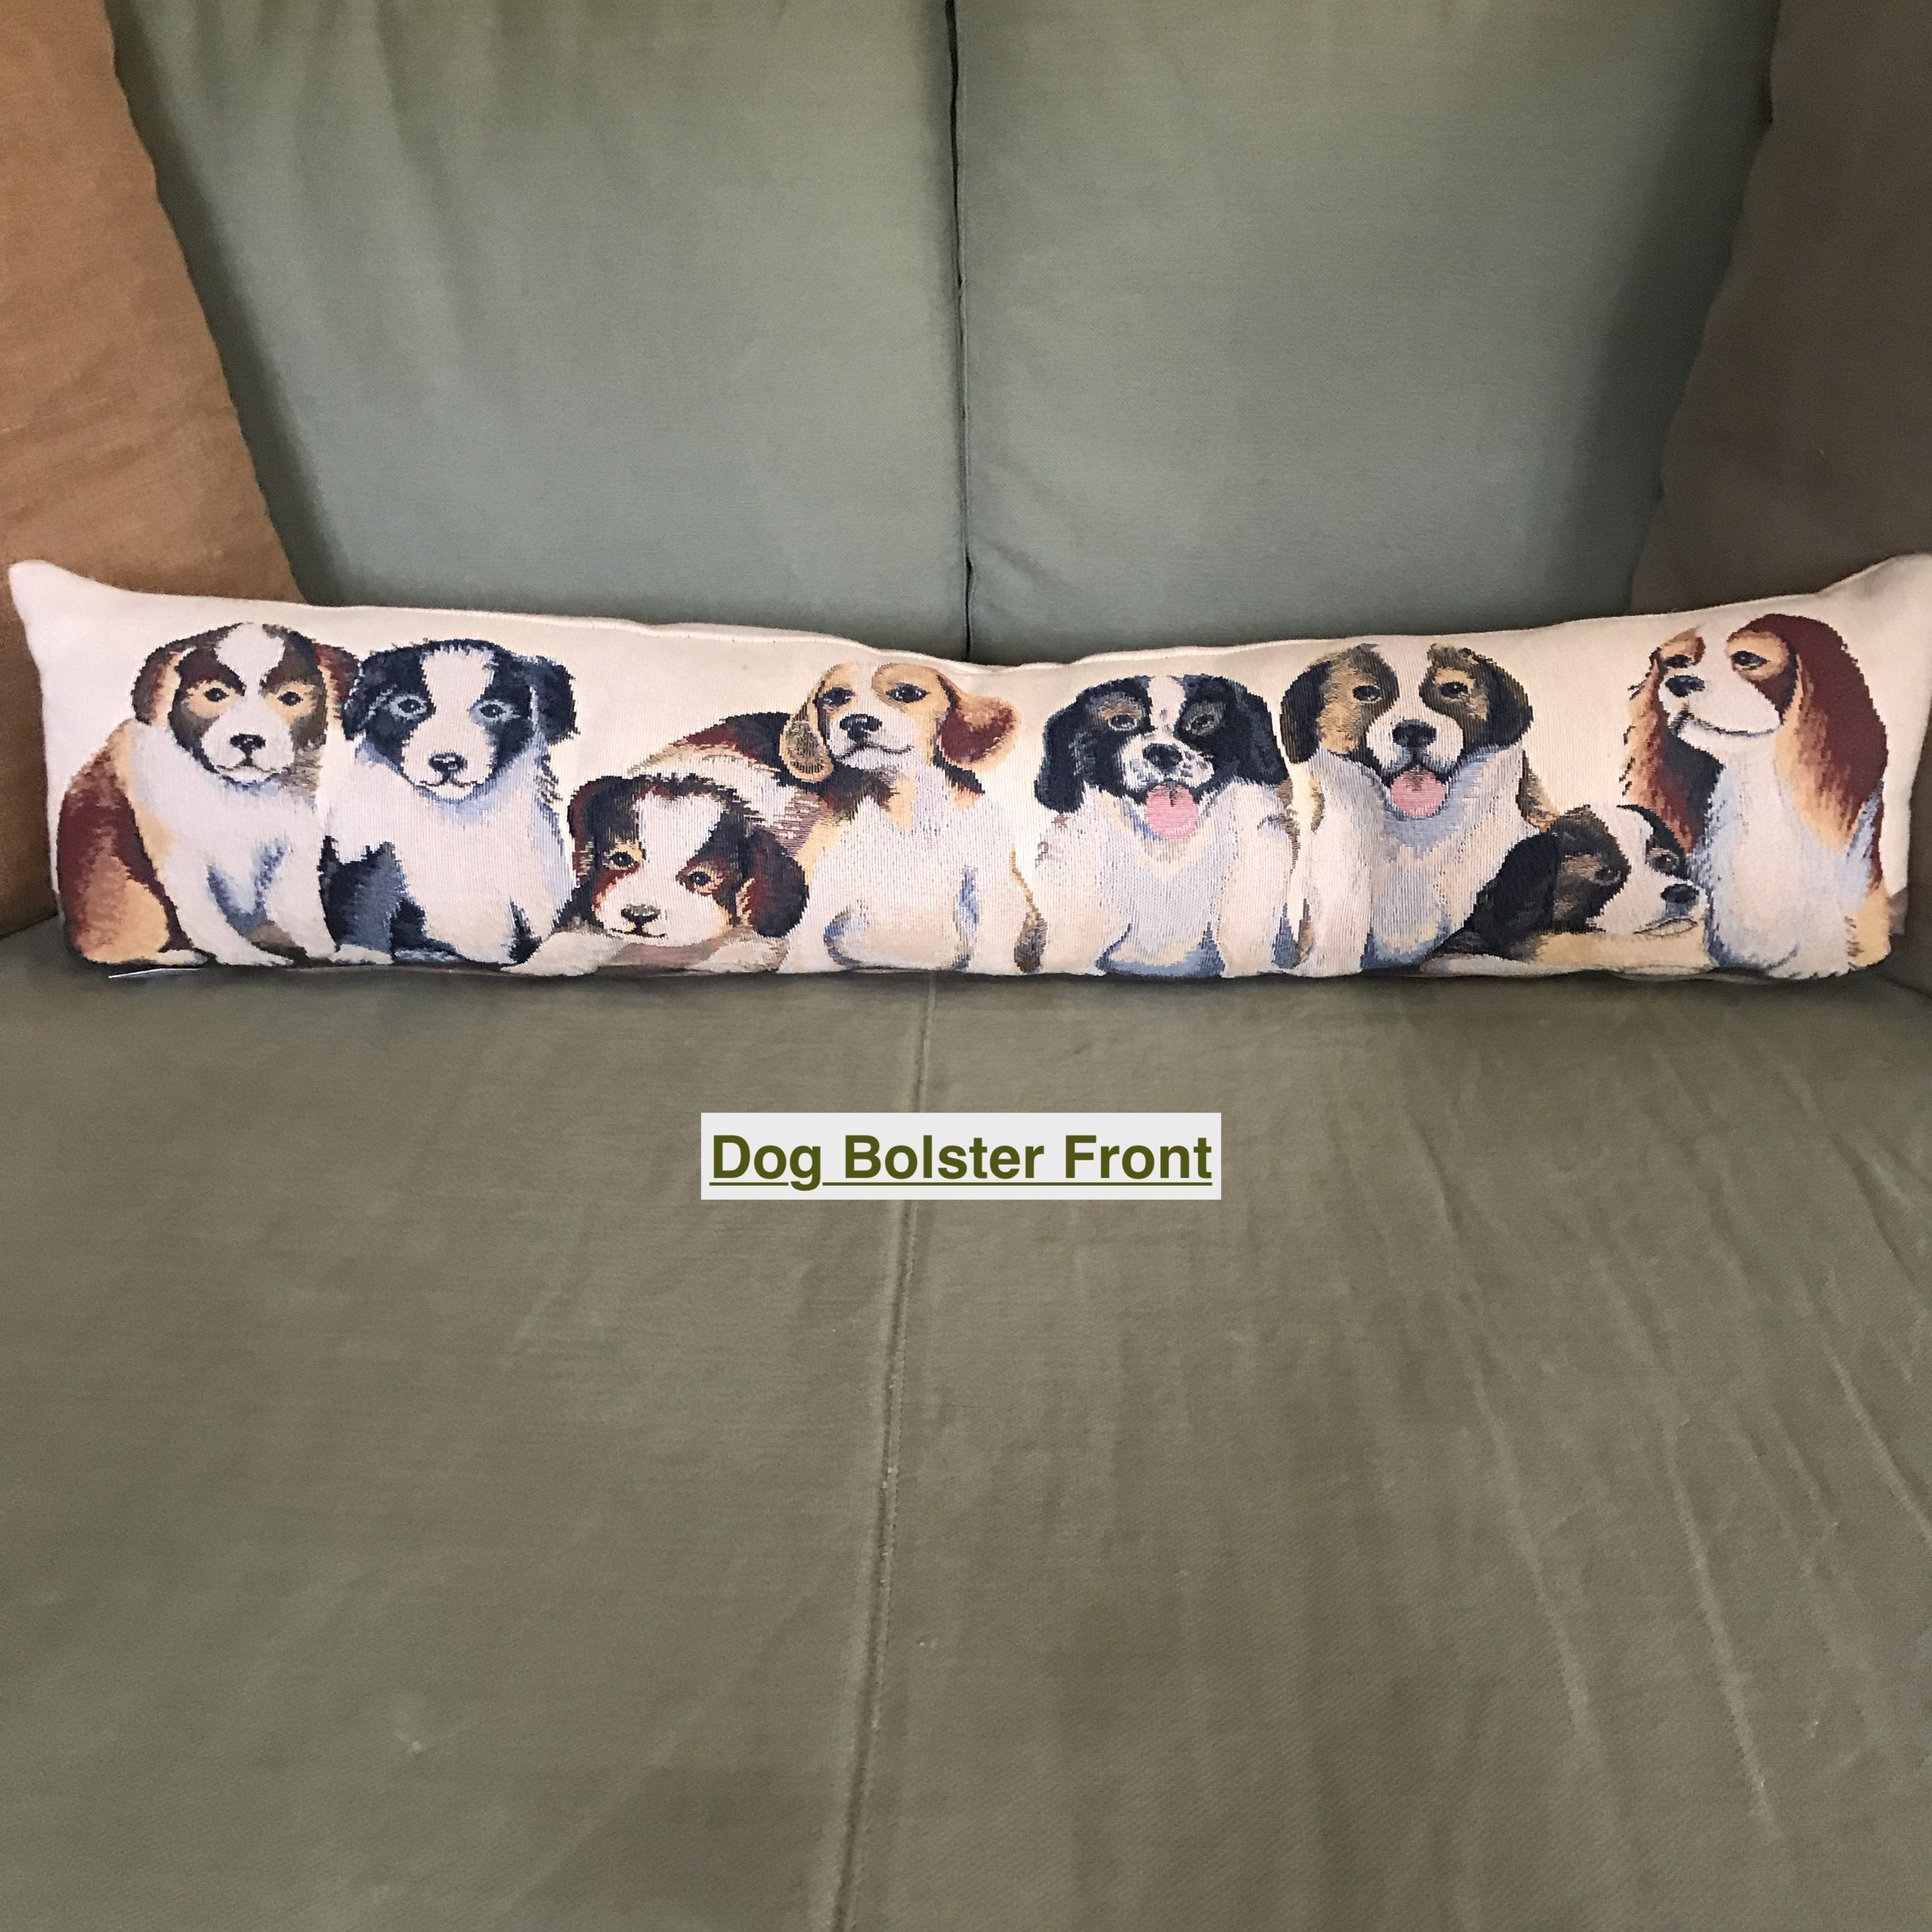 All my Puppies - Bolster